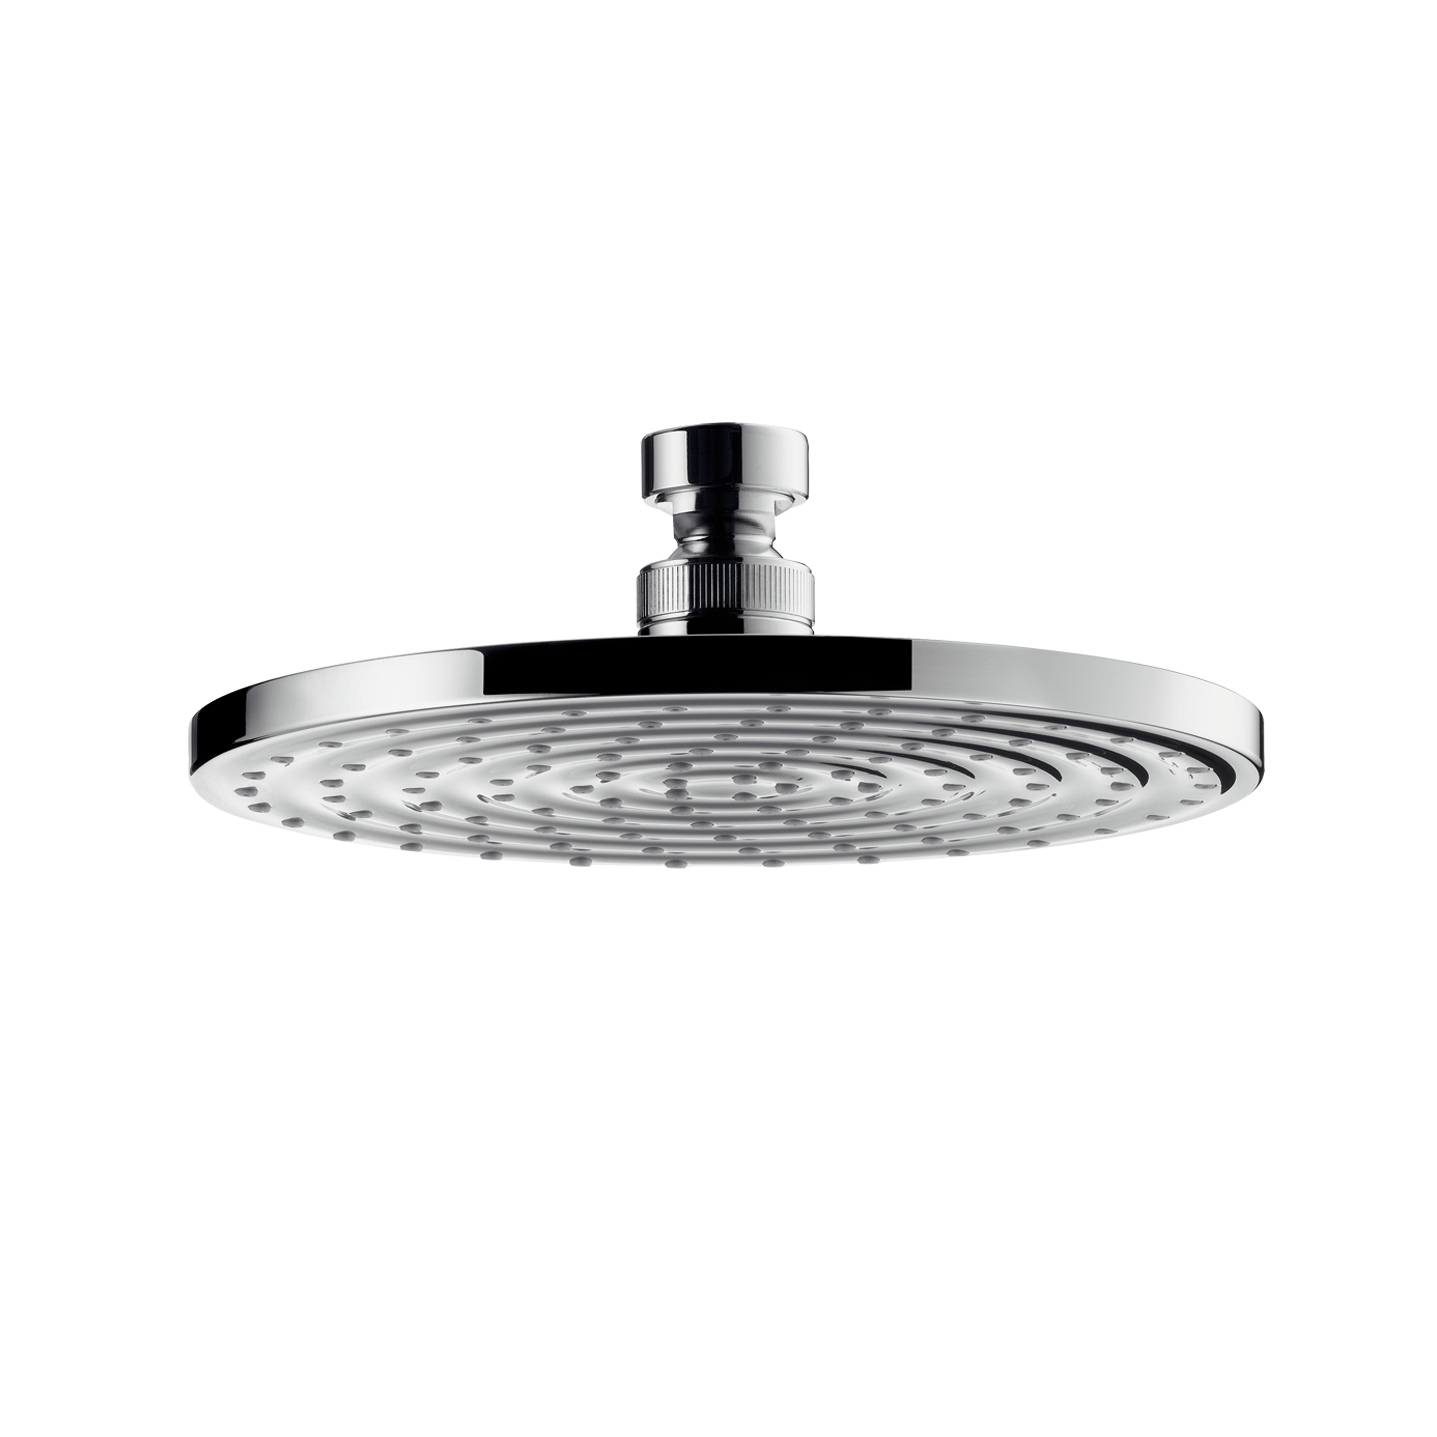 Details About Hansgrohe Shower Head Raindance D 240mm Chrome 92210000